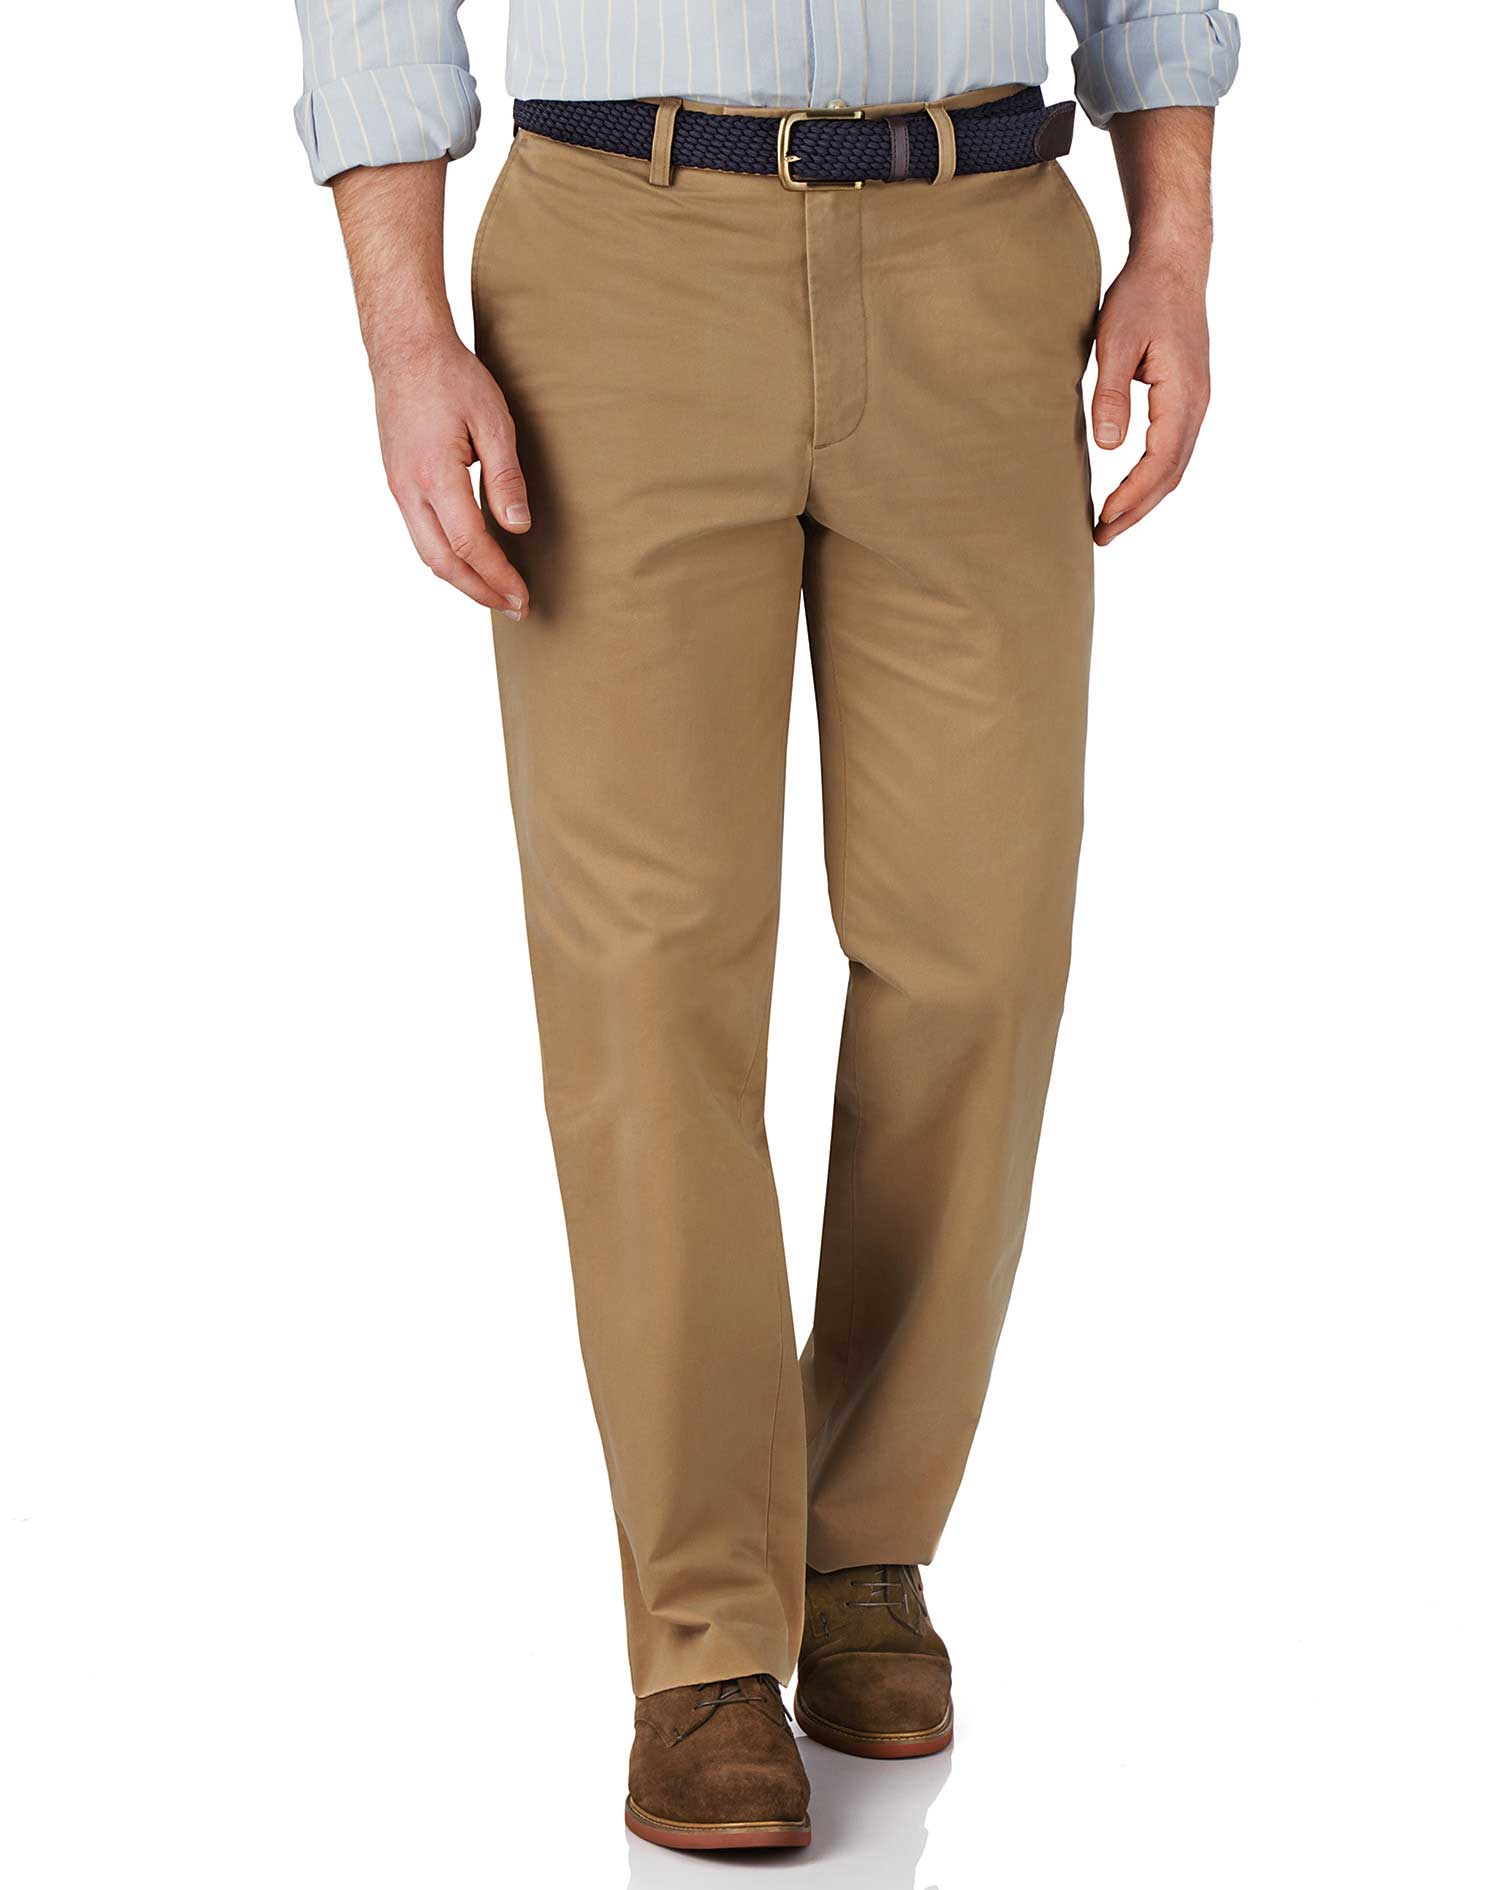 Tan Classic Fit Flat Front Weekend Cotton Chino Trousers Size W36 L32 by Charles Tyrwhitt